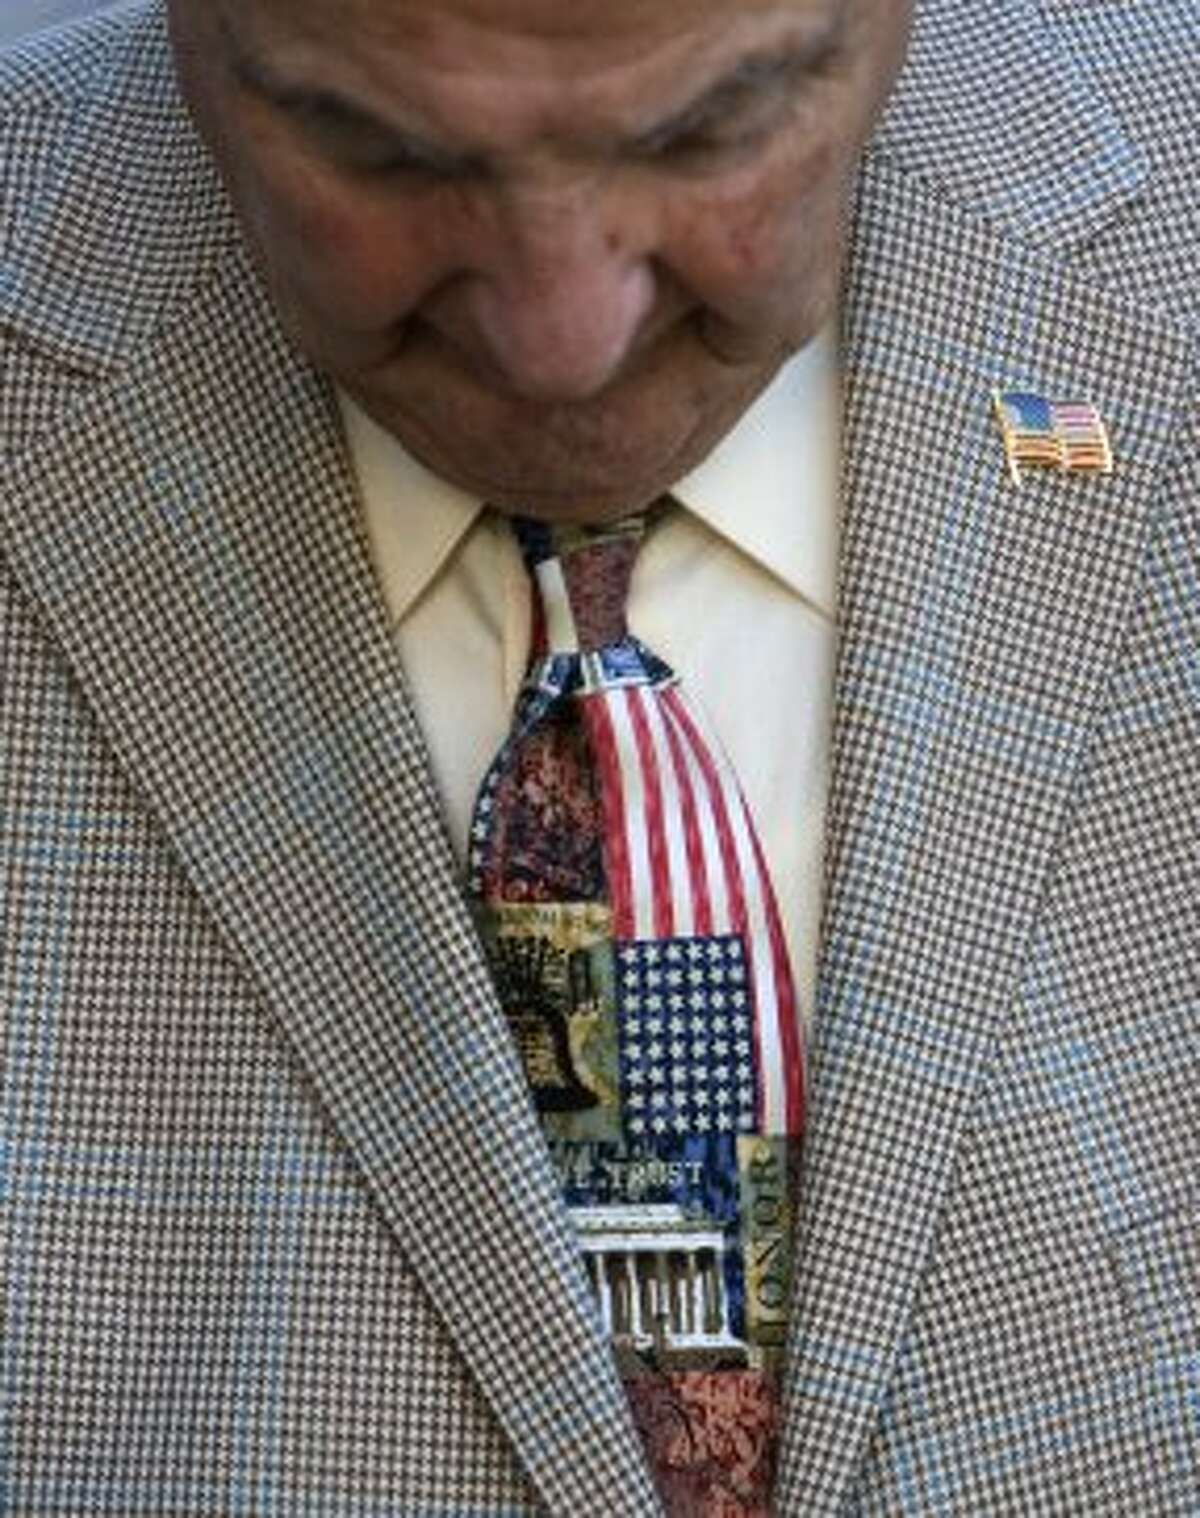 Tony Cucolo looks down before the start of a Sept 11 Commemoration at Lauren's Garden at Market Square Park Tuesday, Sept. 11, 2012, in Houston. The commemoration honored the terrorist attacks on the Twin Towers in New York City on September 11, 2001. (Cody Duty / Houston Chronicle)